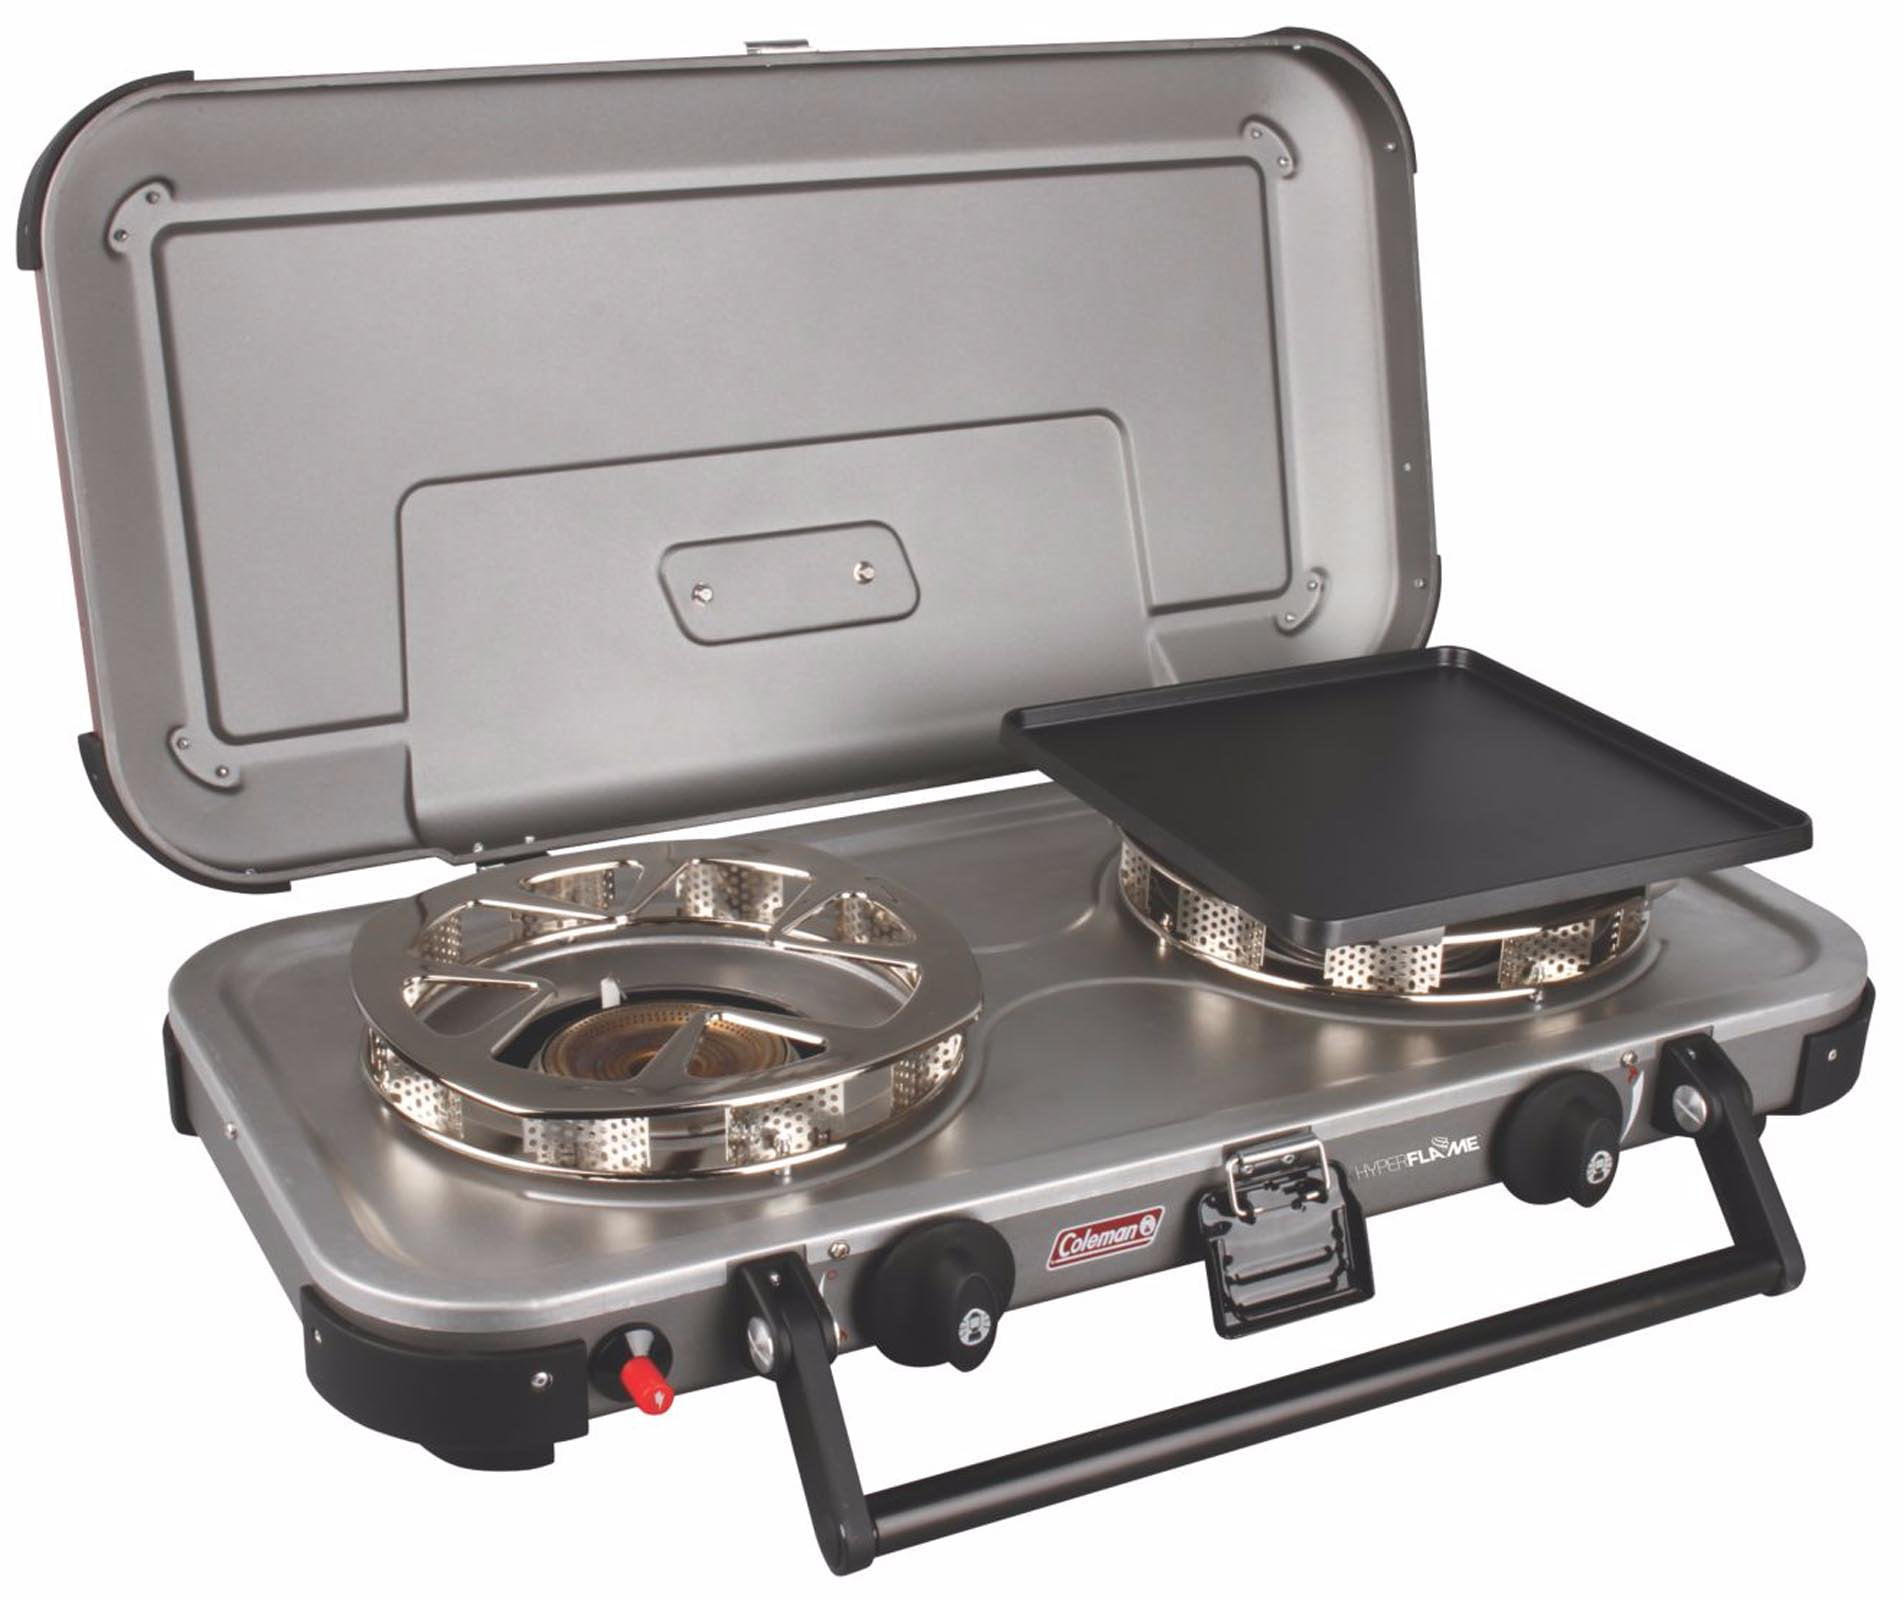 Coleman Gladiator Series FyreChampion 3-IN-1 Propane Stove, Grey, Steel by COLEMAN